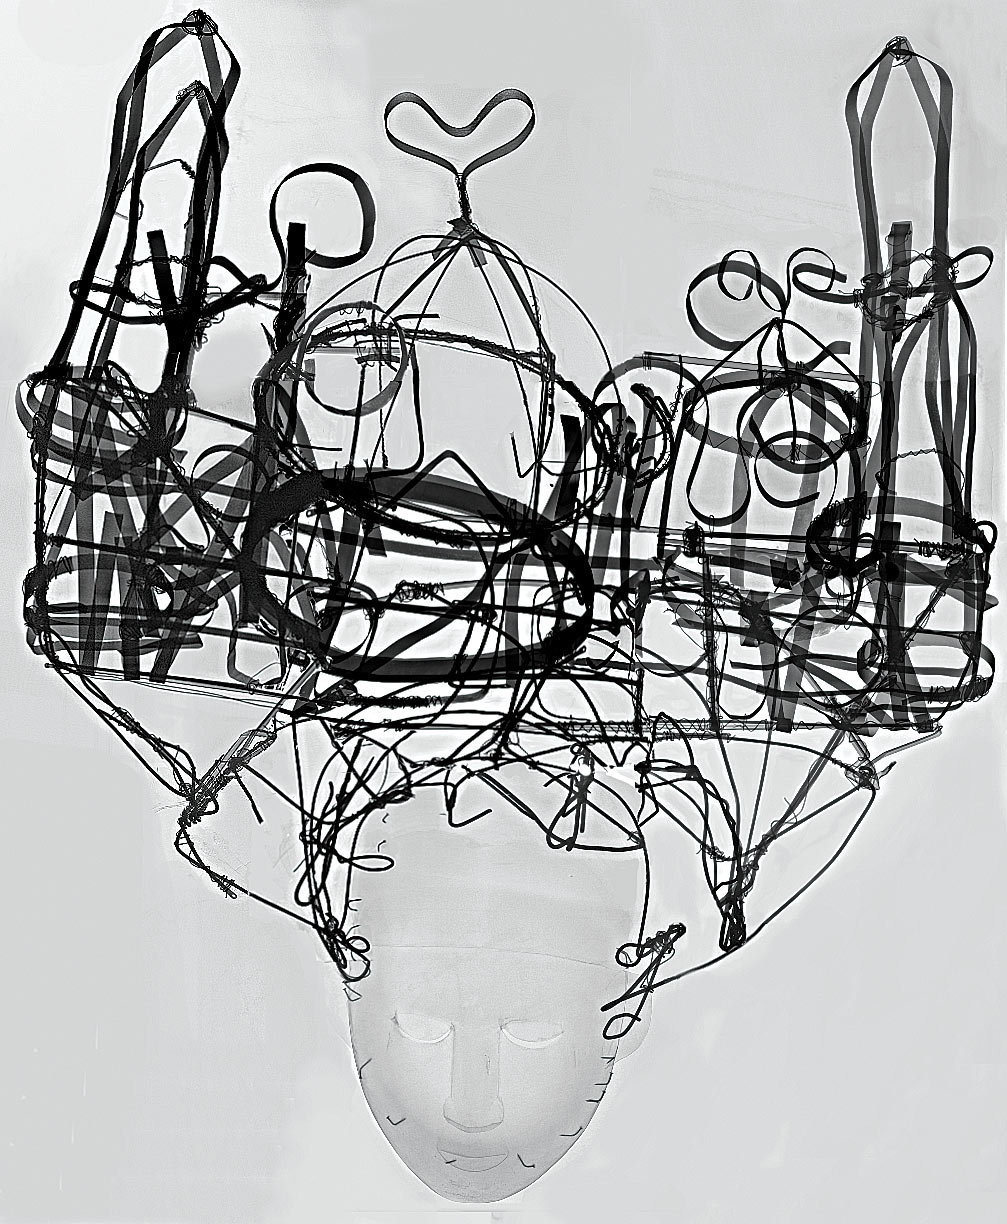 X-RAY OF MASQUERADE HEADDRESS shown above depicting the structural engineering of the object primarily using wires of different gauges. CT scan and X-Ray made possible with the cooperation of the UCLA Radiology Department, Translational Research Imaging Center.